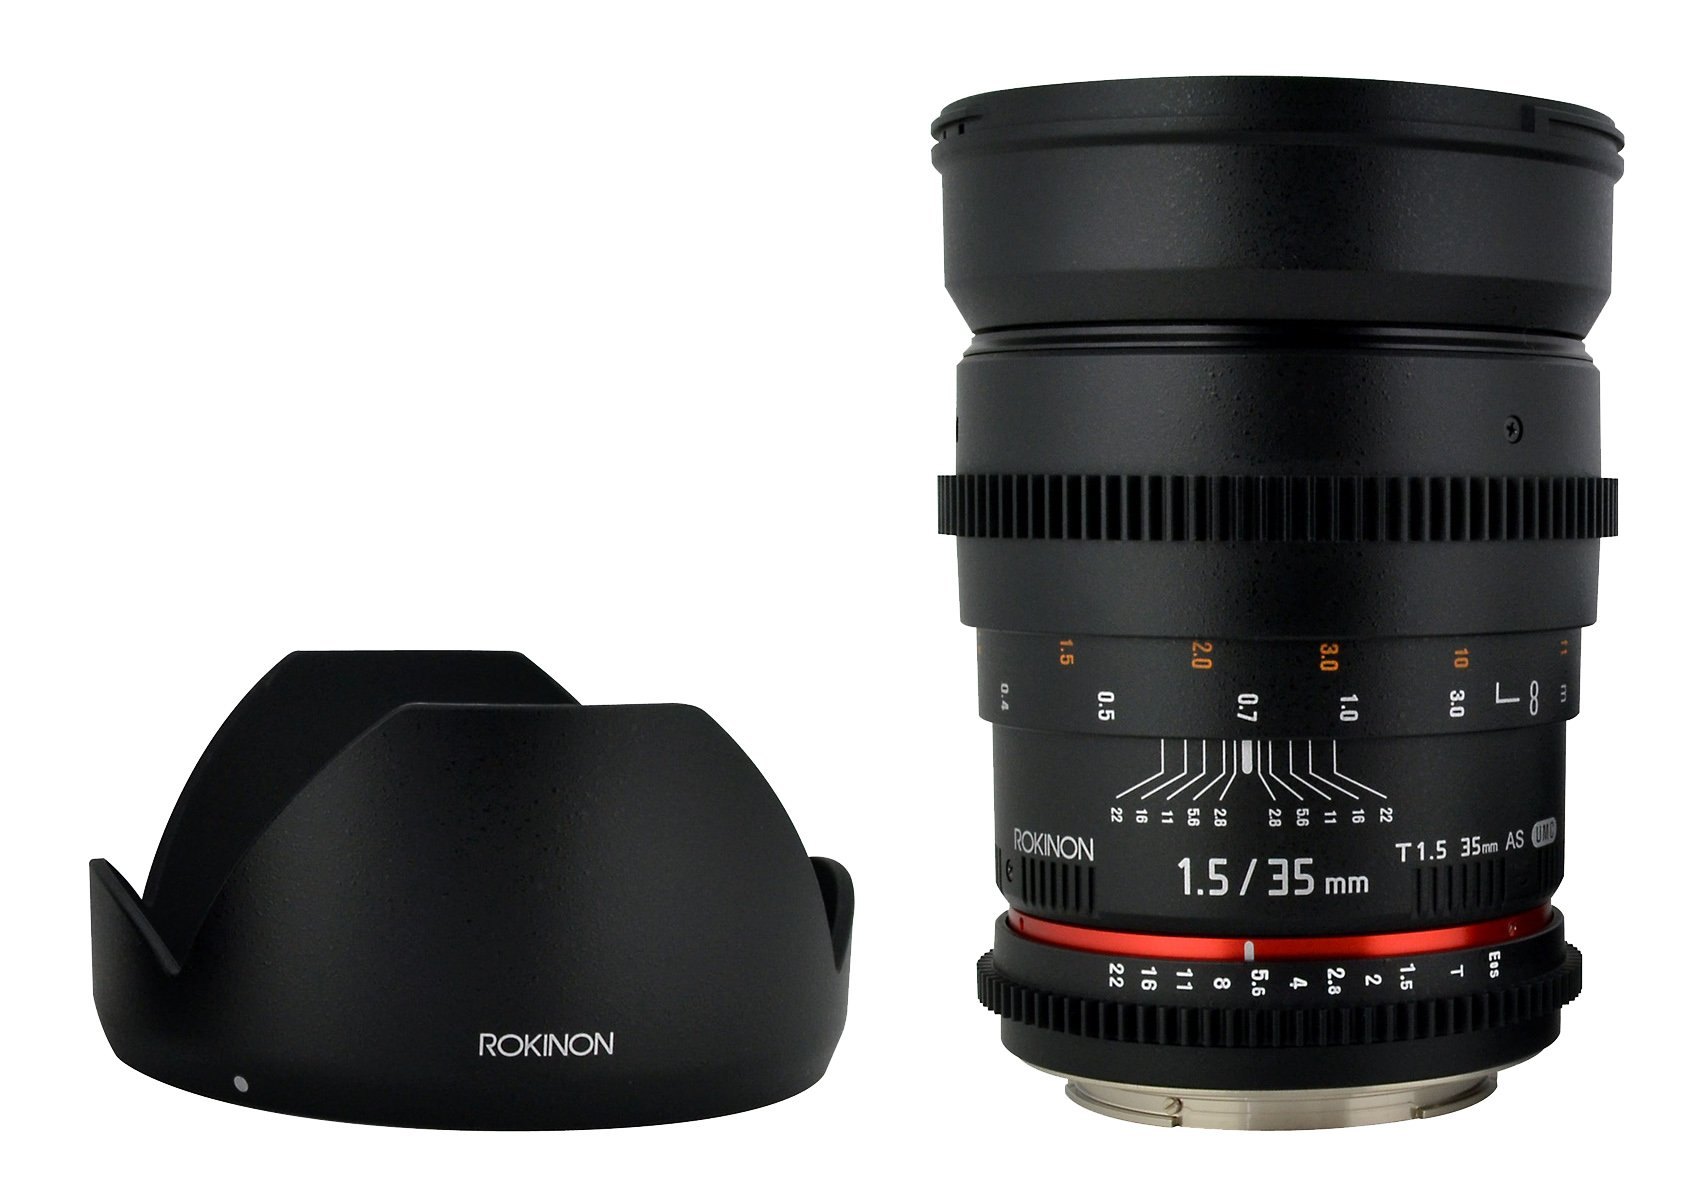 Rokinon Cine CV35-C 35mm T1.5 Aspherical Wide Angle Cine Lens with De-Clicked Aperture for Canon EOS DSLR 35-35mm, Fixed-Non-Zoom Lens by Rokinon (Image #5)